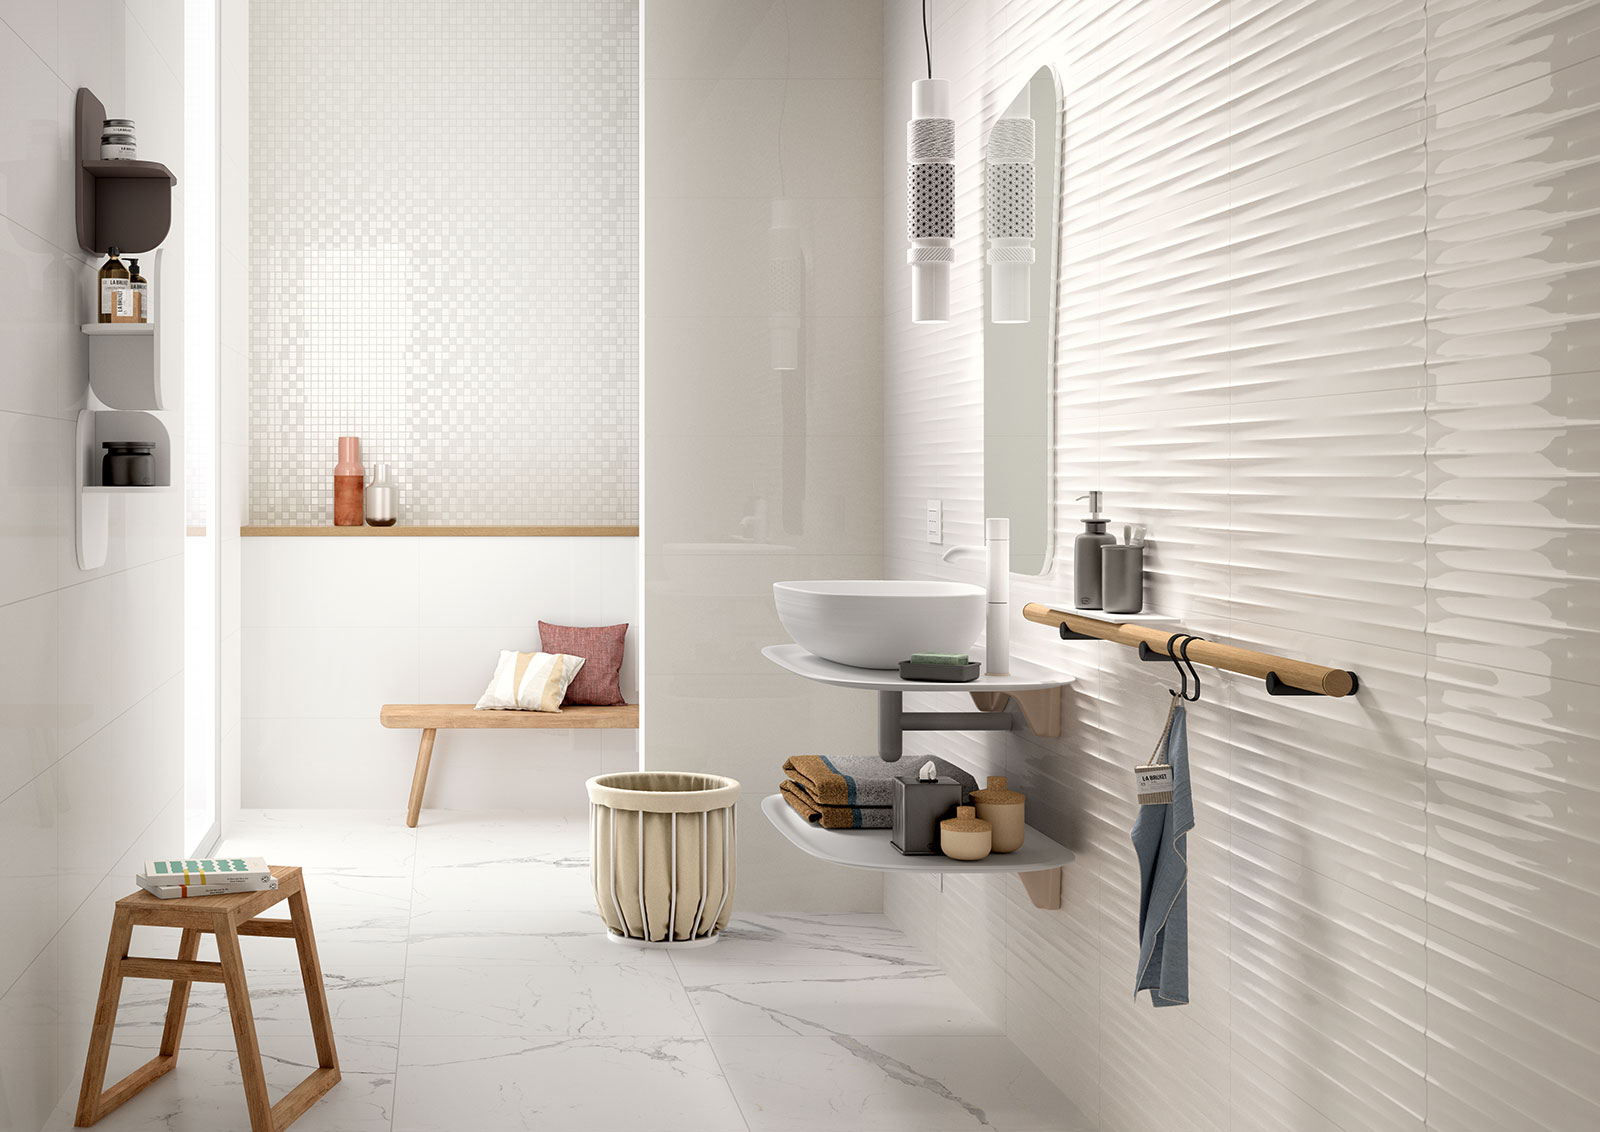 color code ceramic tiles marazzi_7358 - Bathroom Tiles Color